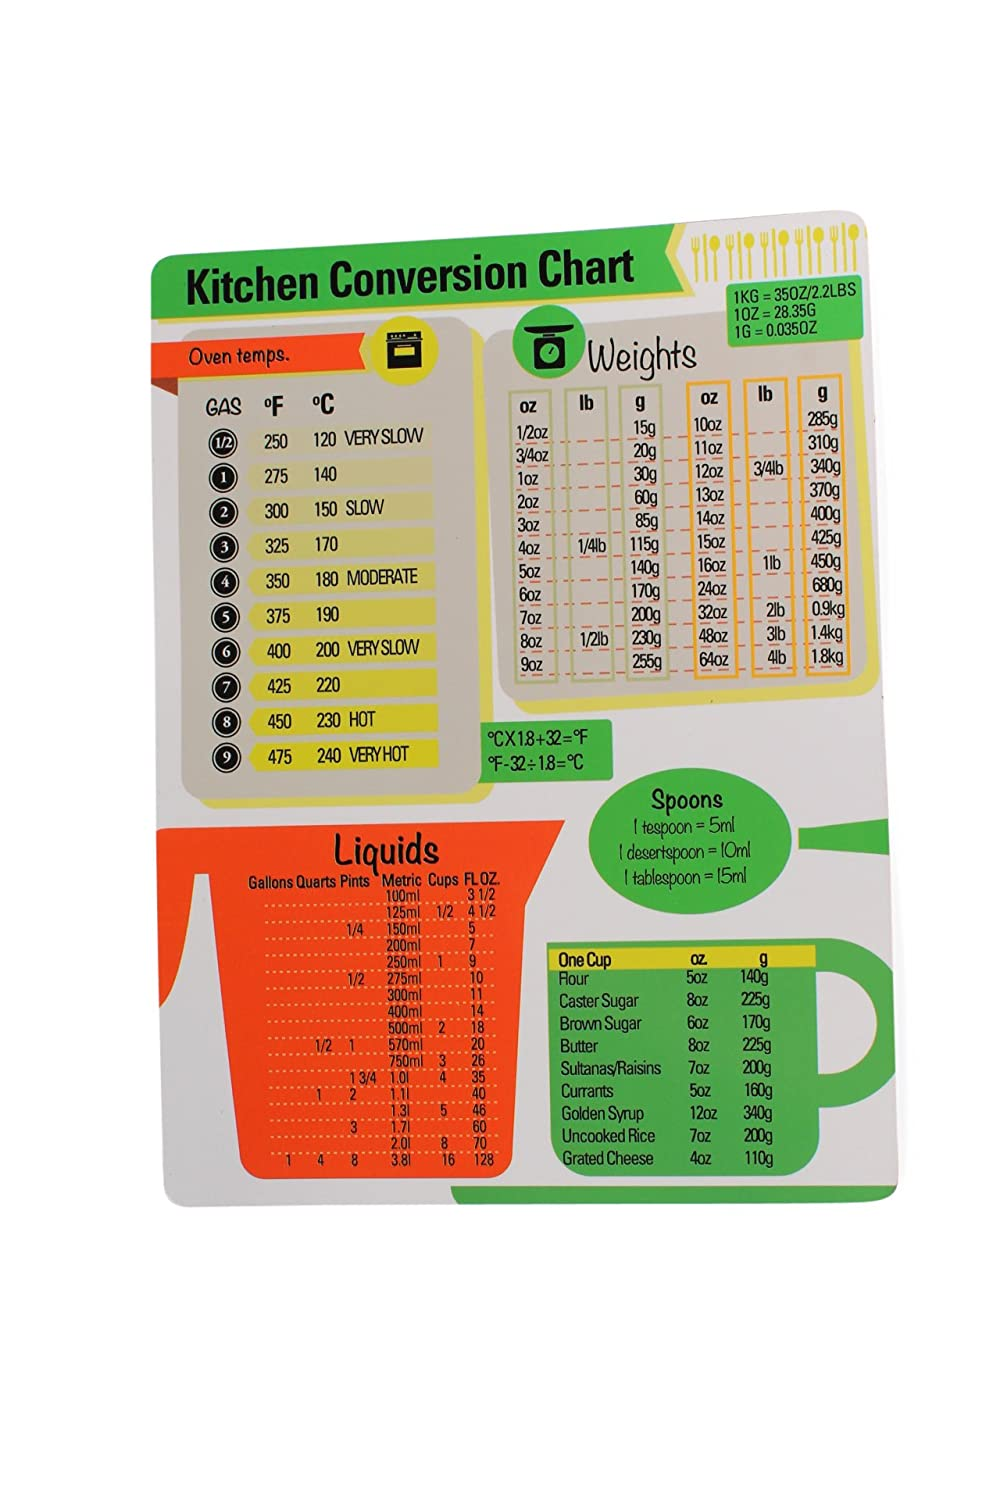 Amazon metric conversion chart fridge magnet 6 x 8 includes amazon metric conversion chart fridge magnet 6 x 8 includes weight conversion chart measurement conversion chart liquid conversion chart and nvjuhfo Image collections